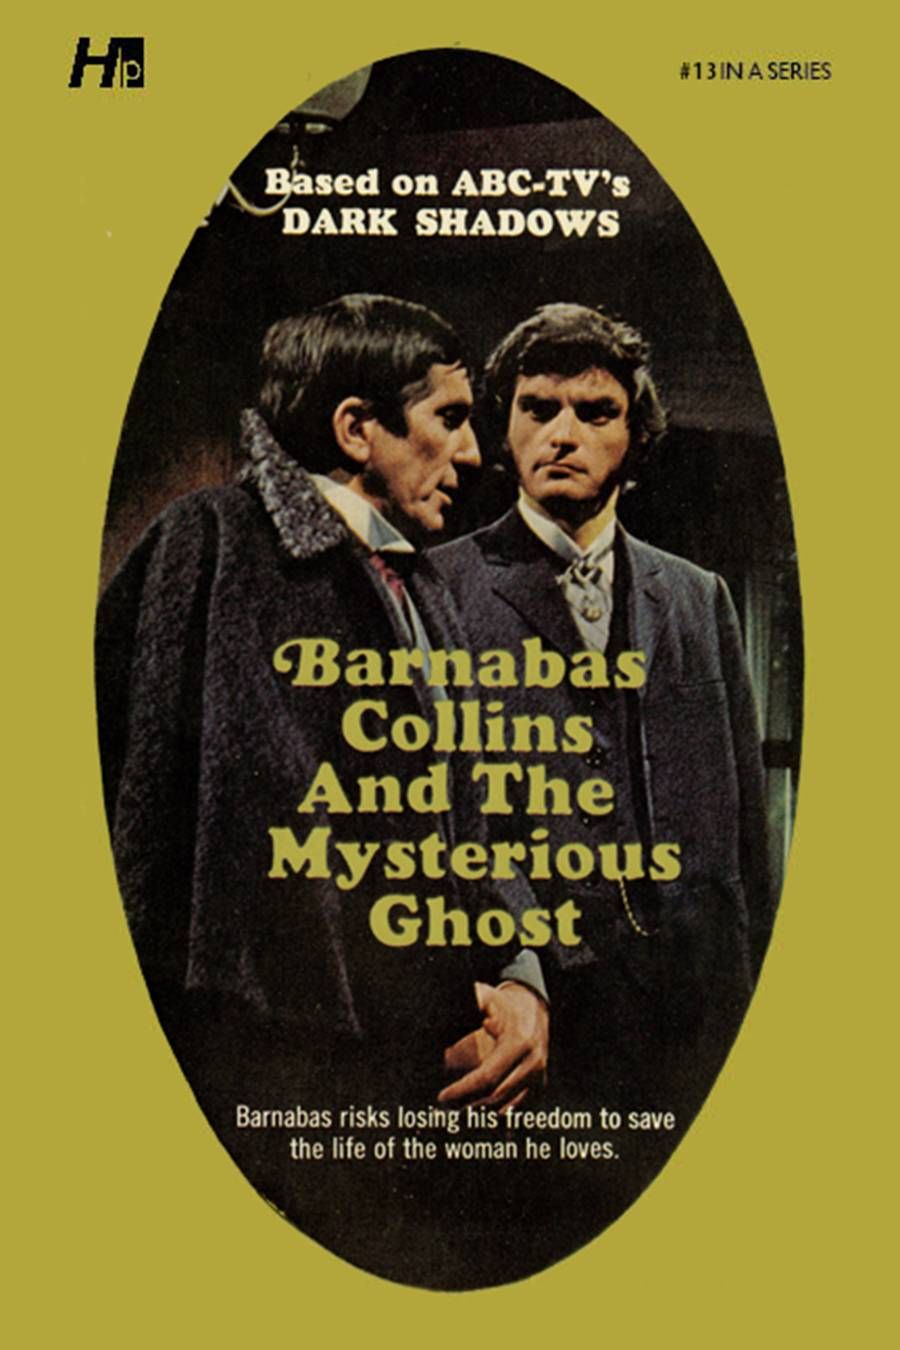 DARK SHADOWS PAPERBACK LIBRARY NOVEL VOL 13 MYSTERIOUS GHOST